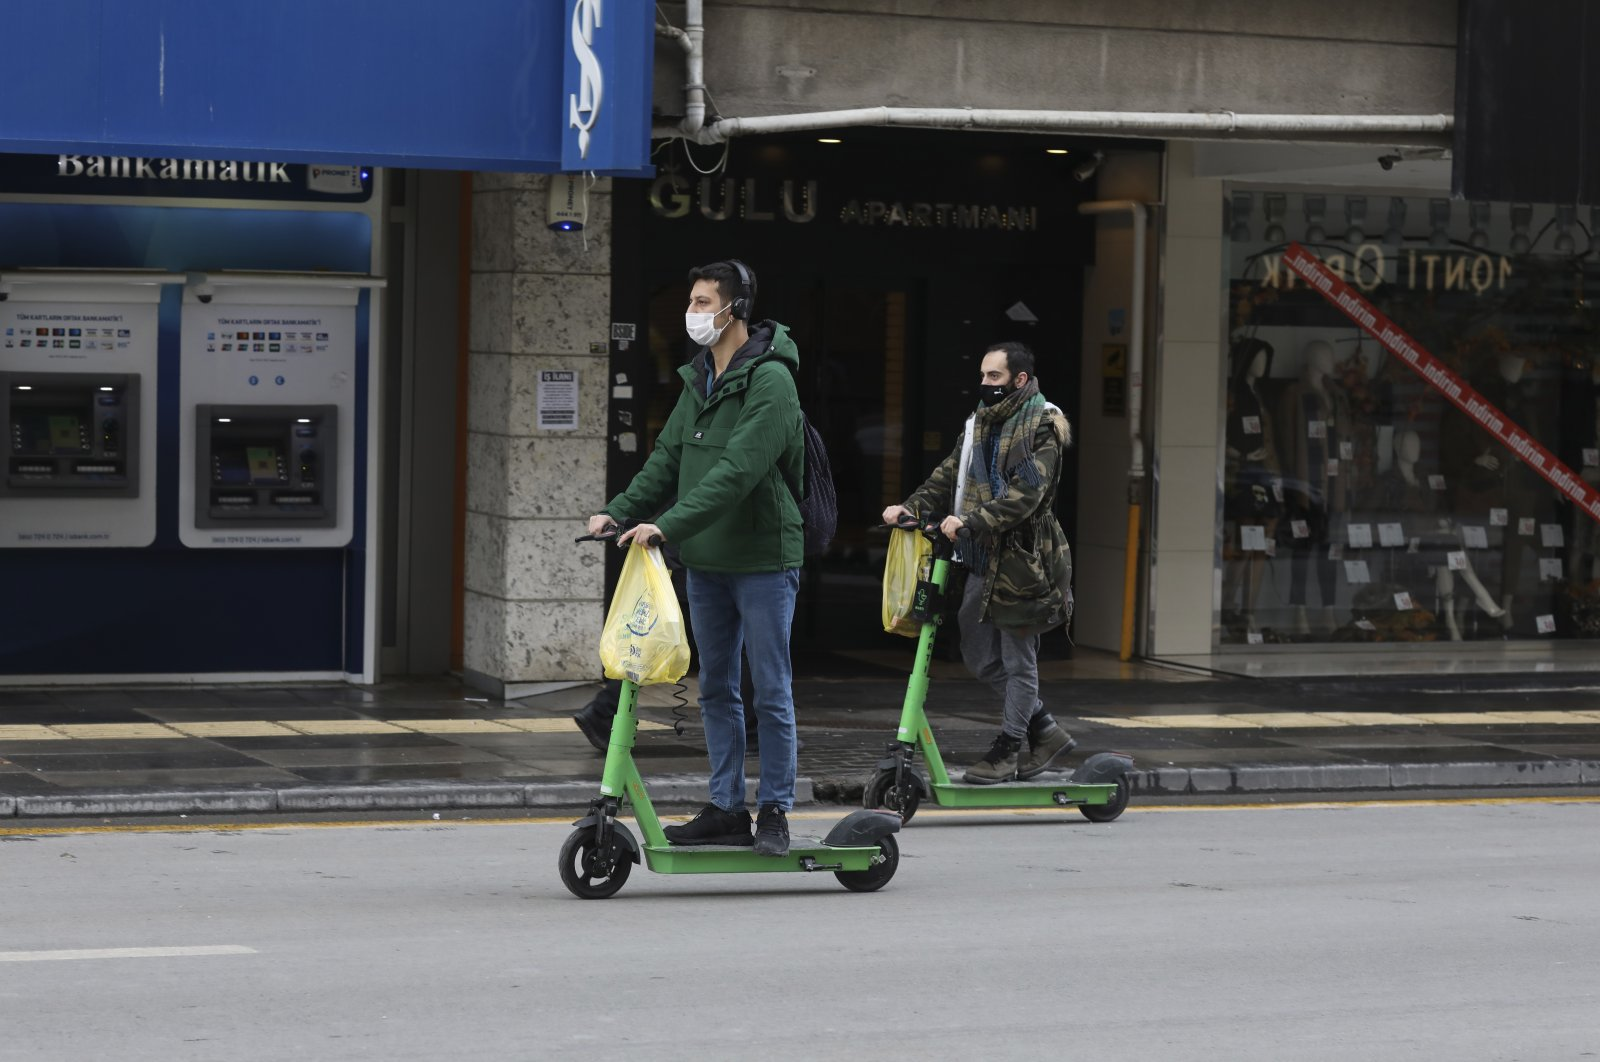 People wearing protective masks ride scooters in the capital Ankara, Turkey, Jan. 24, 2021. (AP PHOTO)